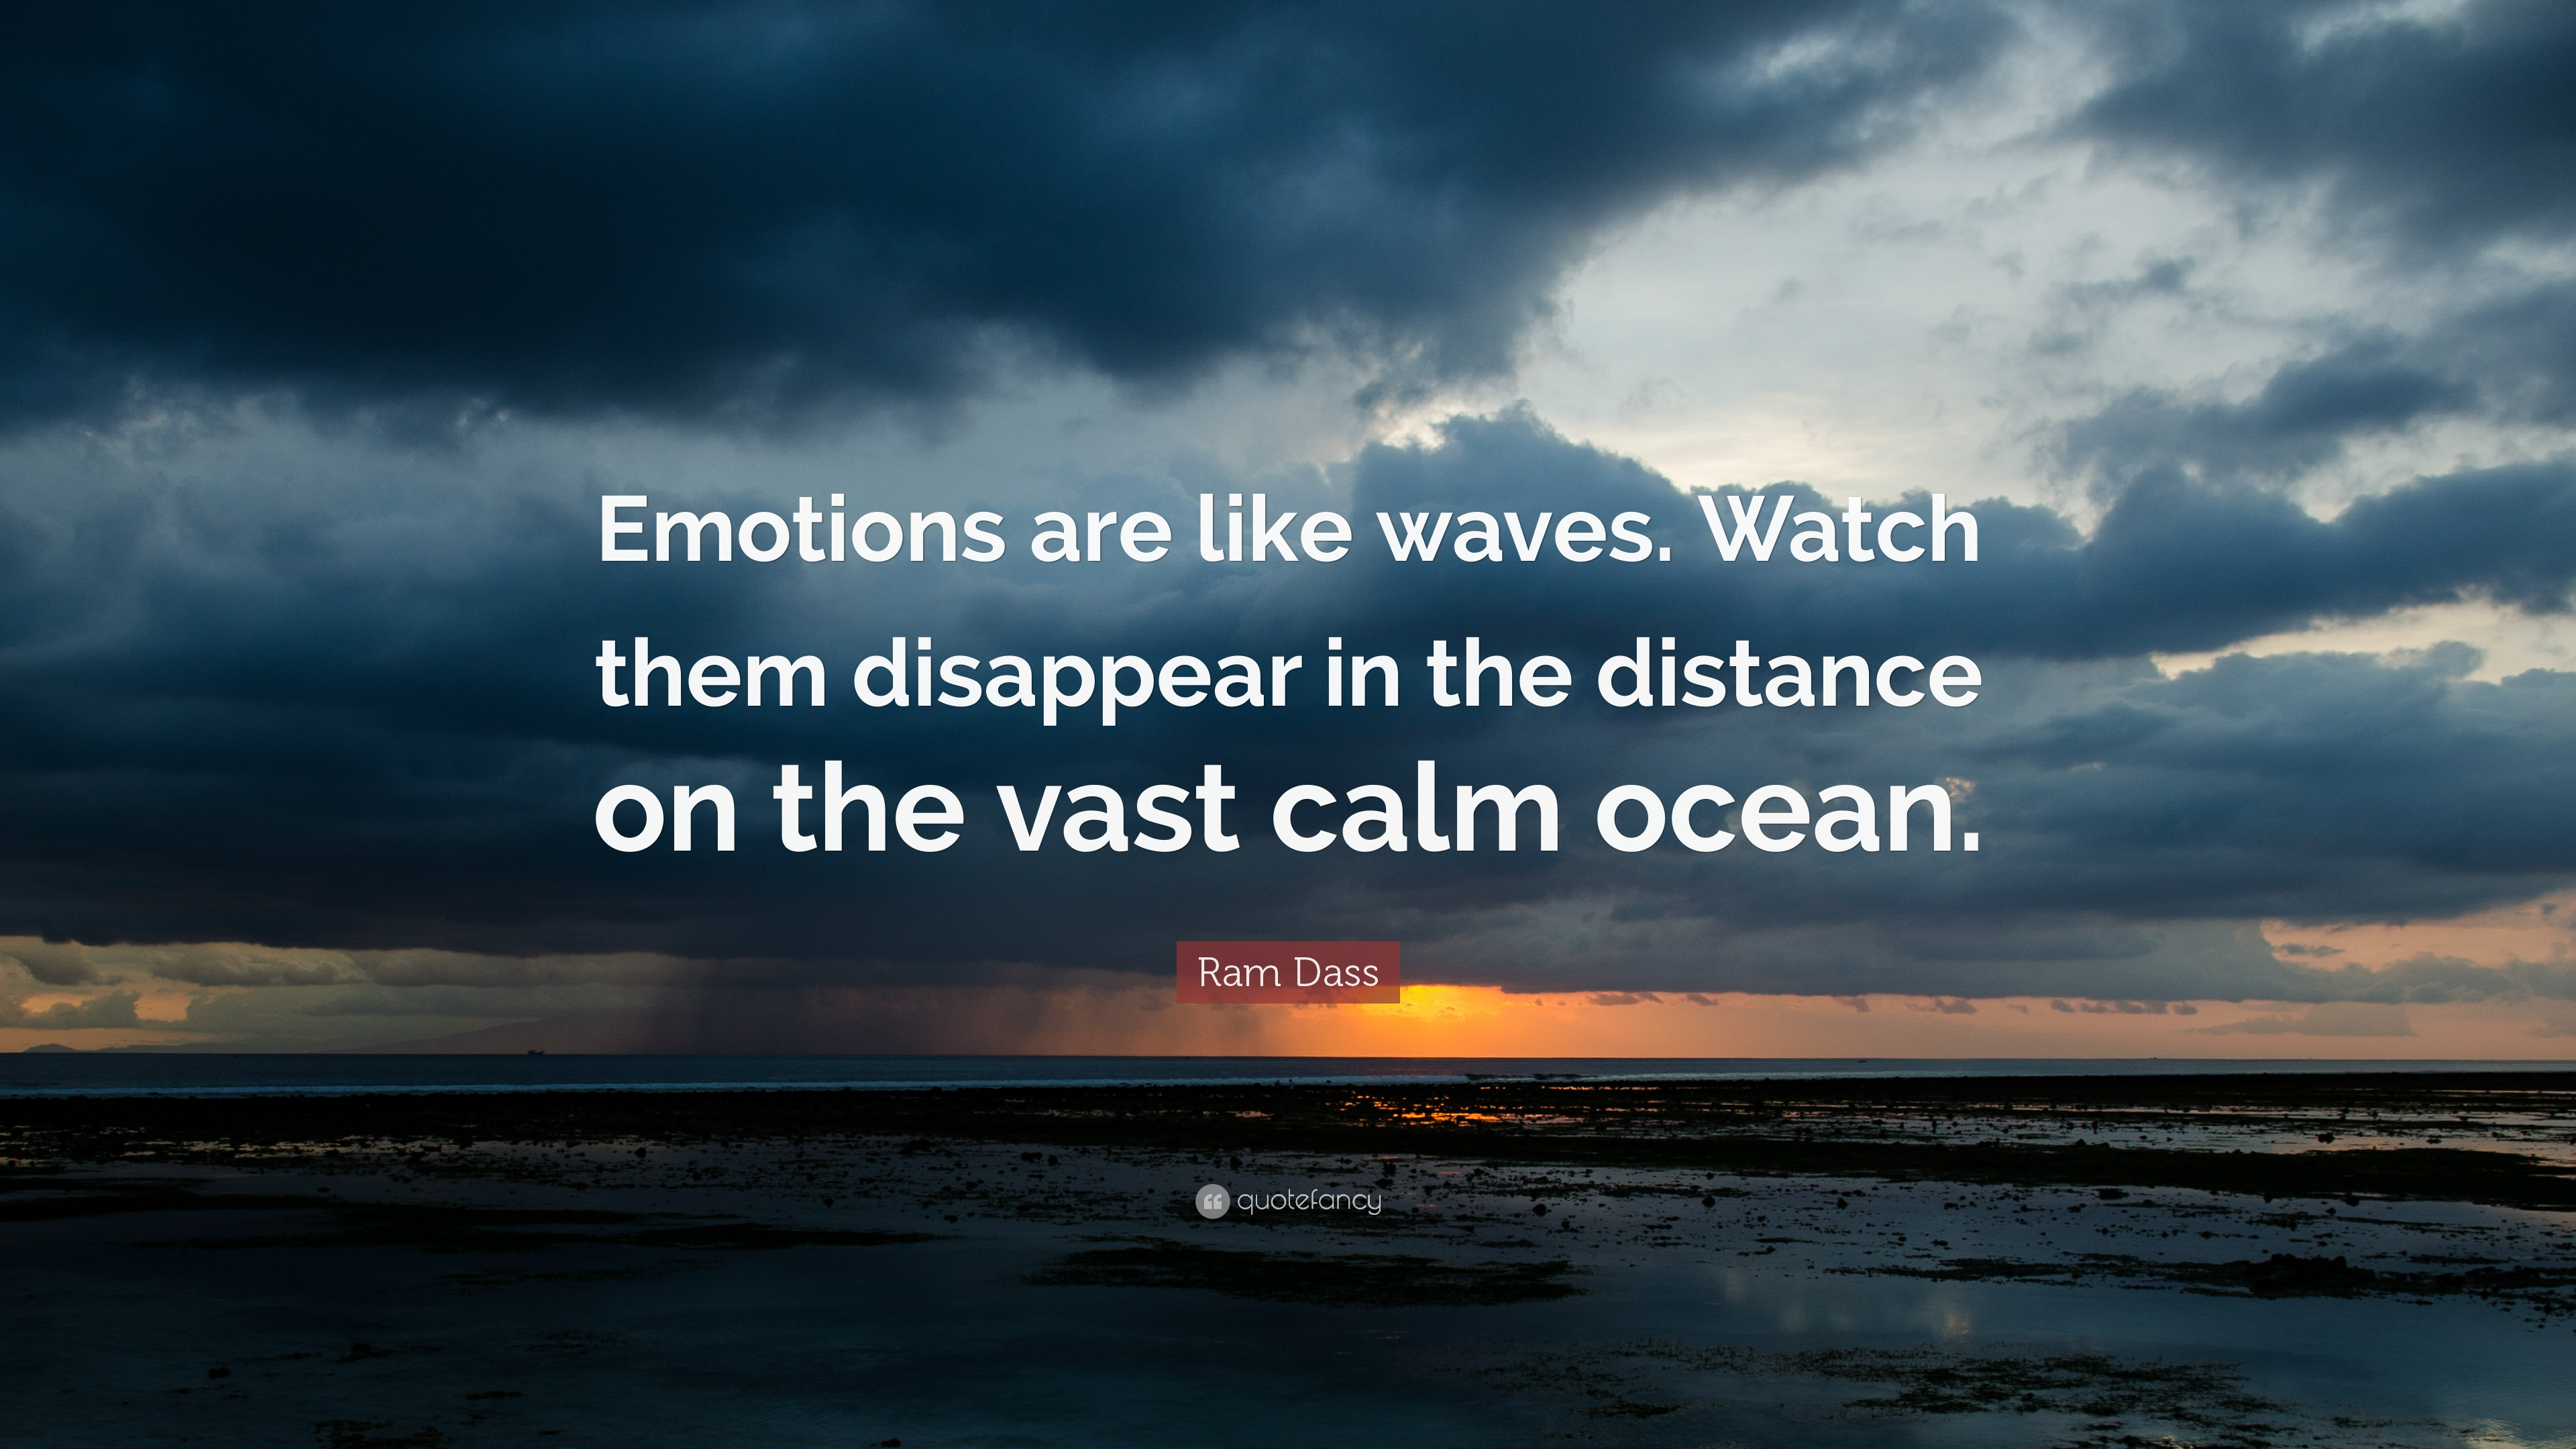 Ram Dass Quote Emotions Are Like Waves Watch Them Disappear In The Distance On The Vast Calm Ocean 20 Wallpapers Quotefancy